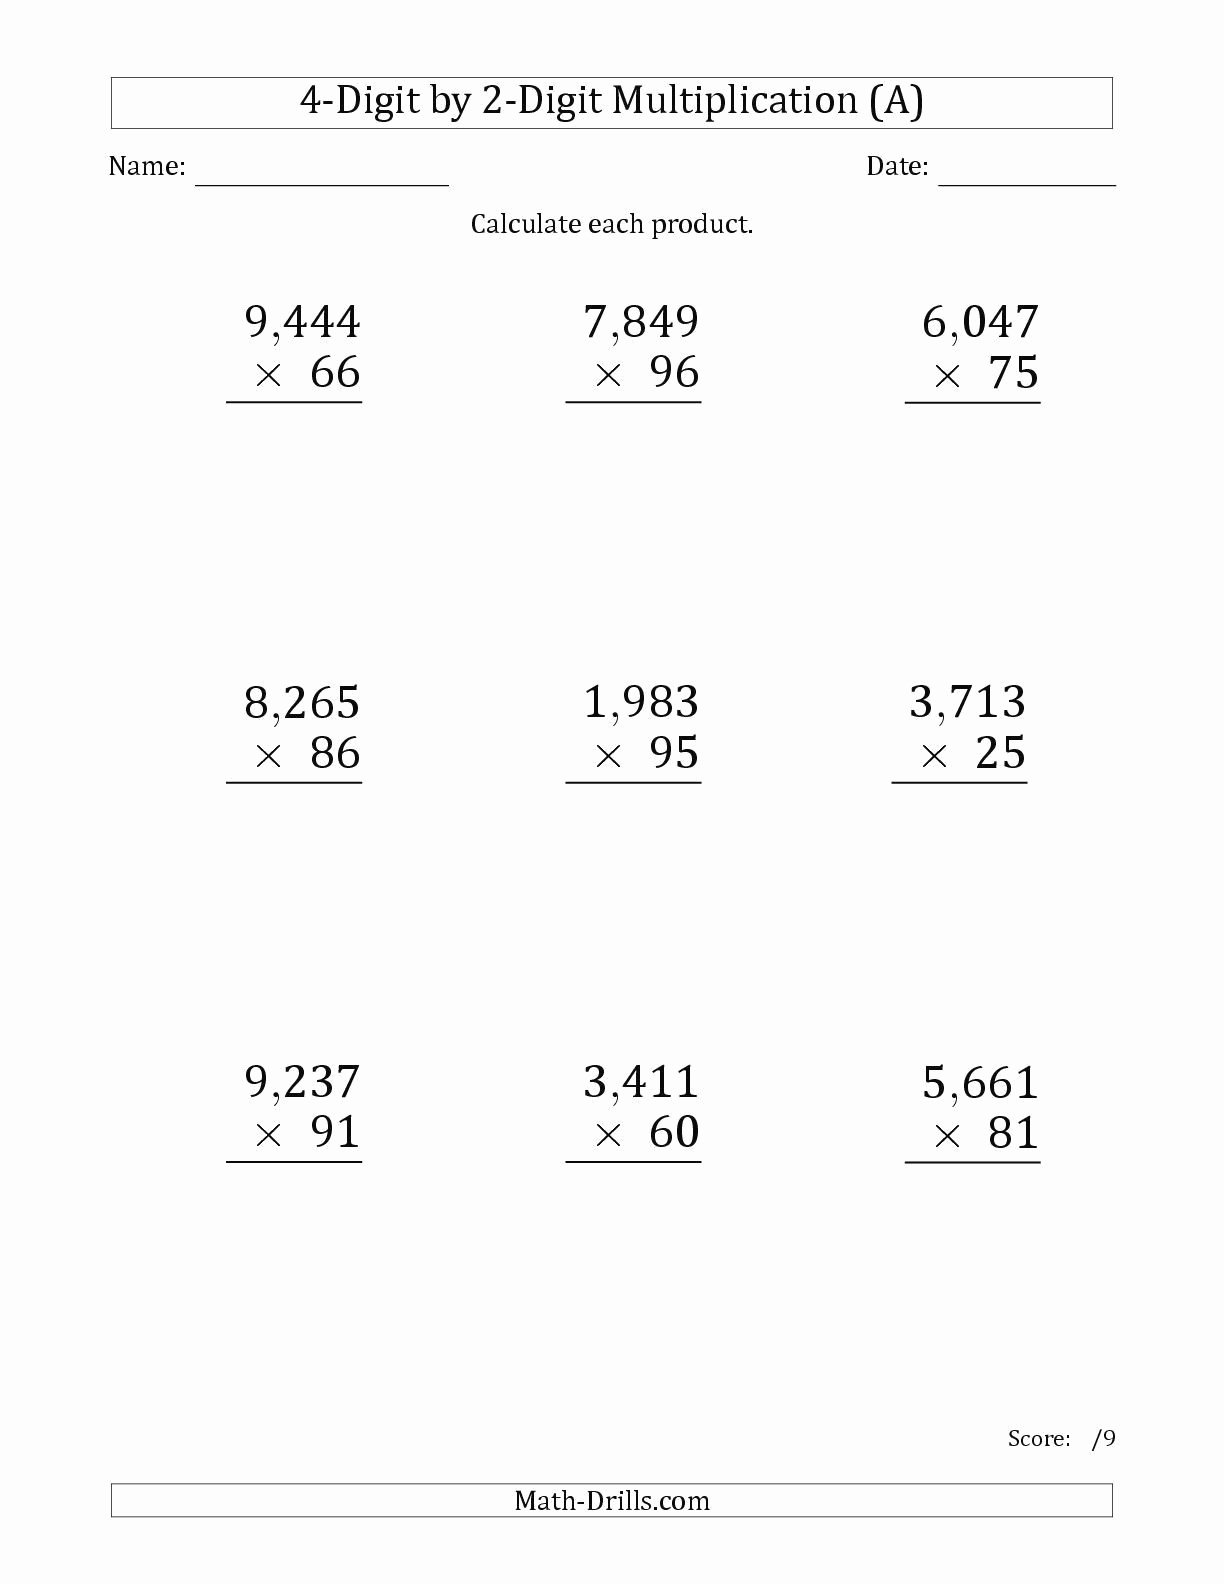 Multiplication Worksheets for Fifth Grade Fresh 5th Grade Multiplication Worksheets for Printable 5th Grade